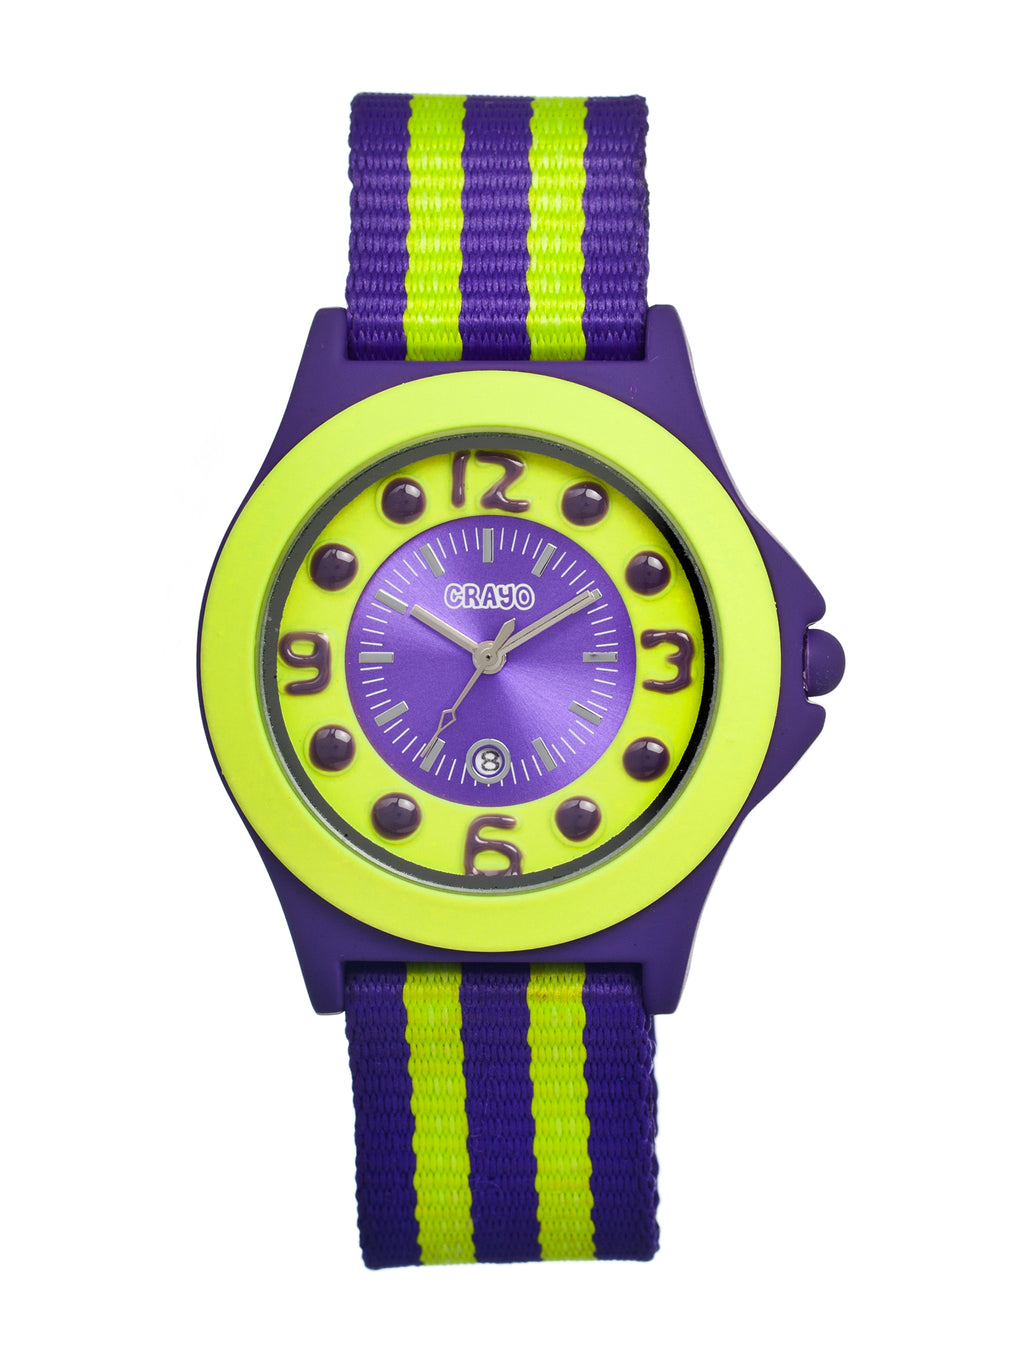 Crayo Carnival Nylon-Band Unisex Watch w/Date - Purple/Lime - CRACR0702